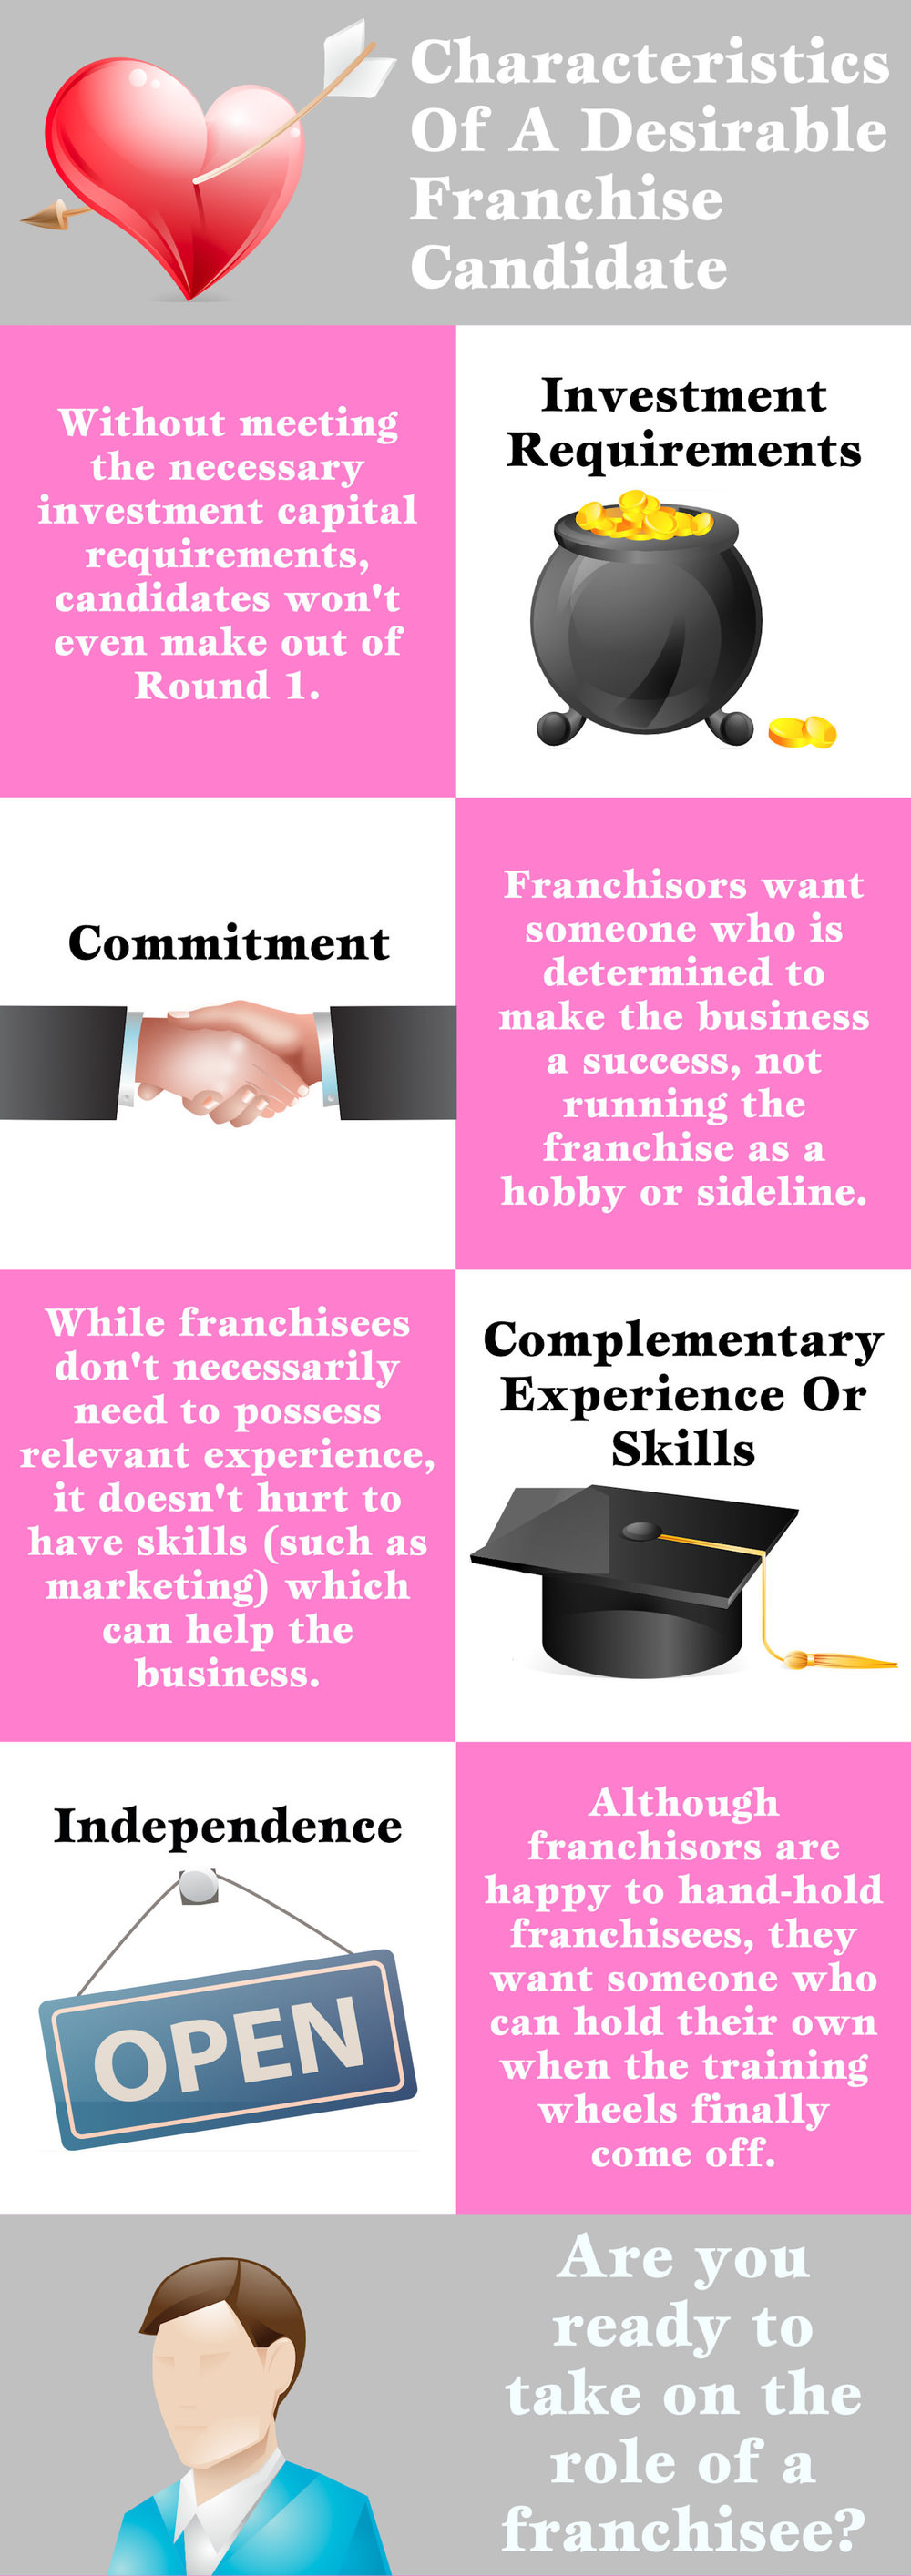 characteristics-of-a-desirable-franchise-candidate